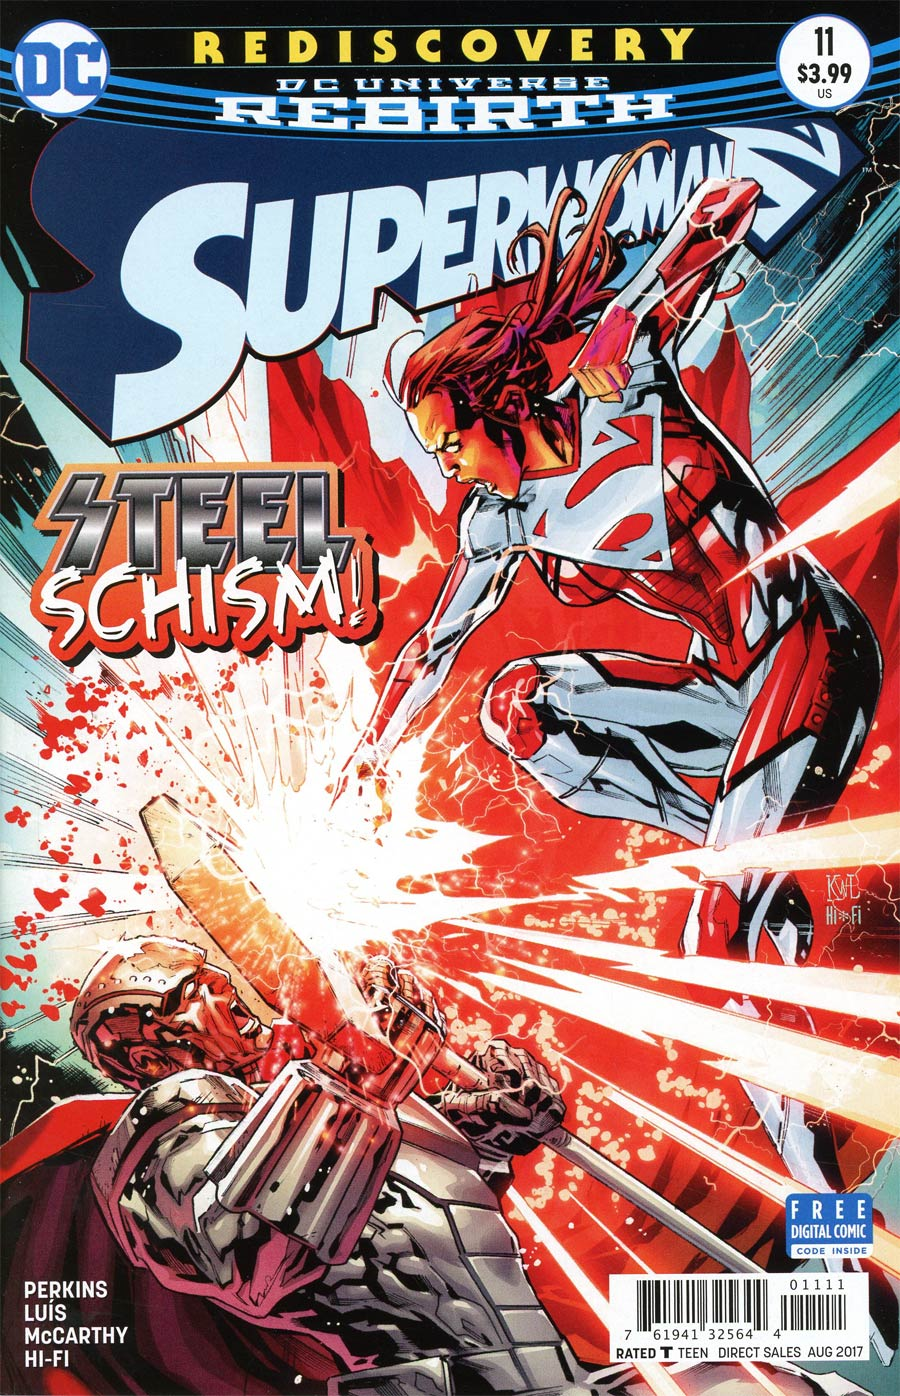 Superwoman #11